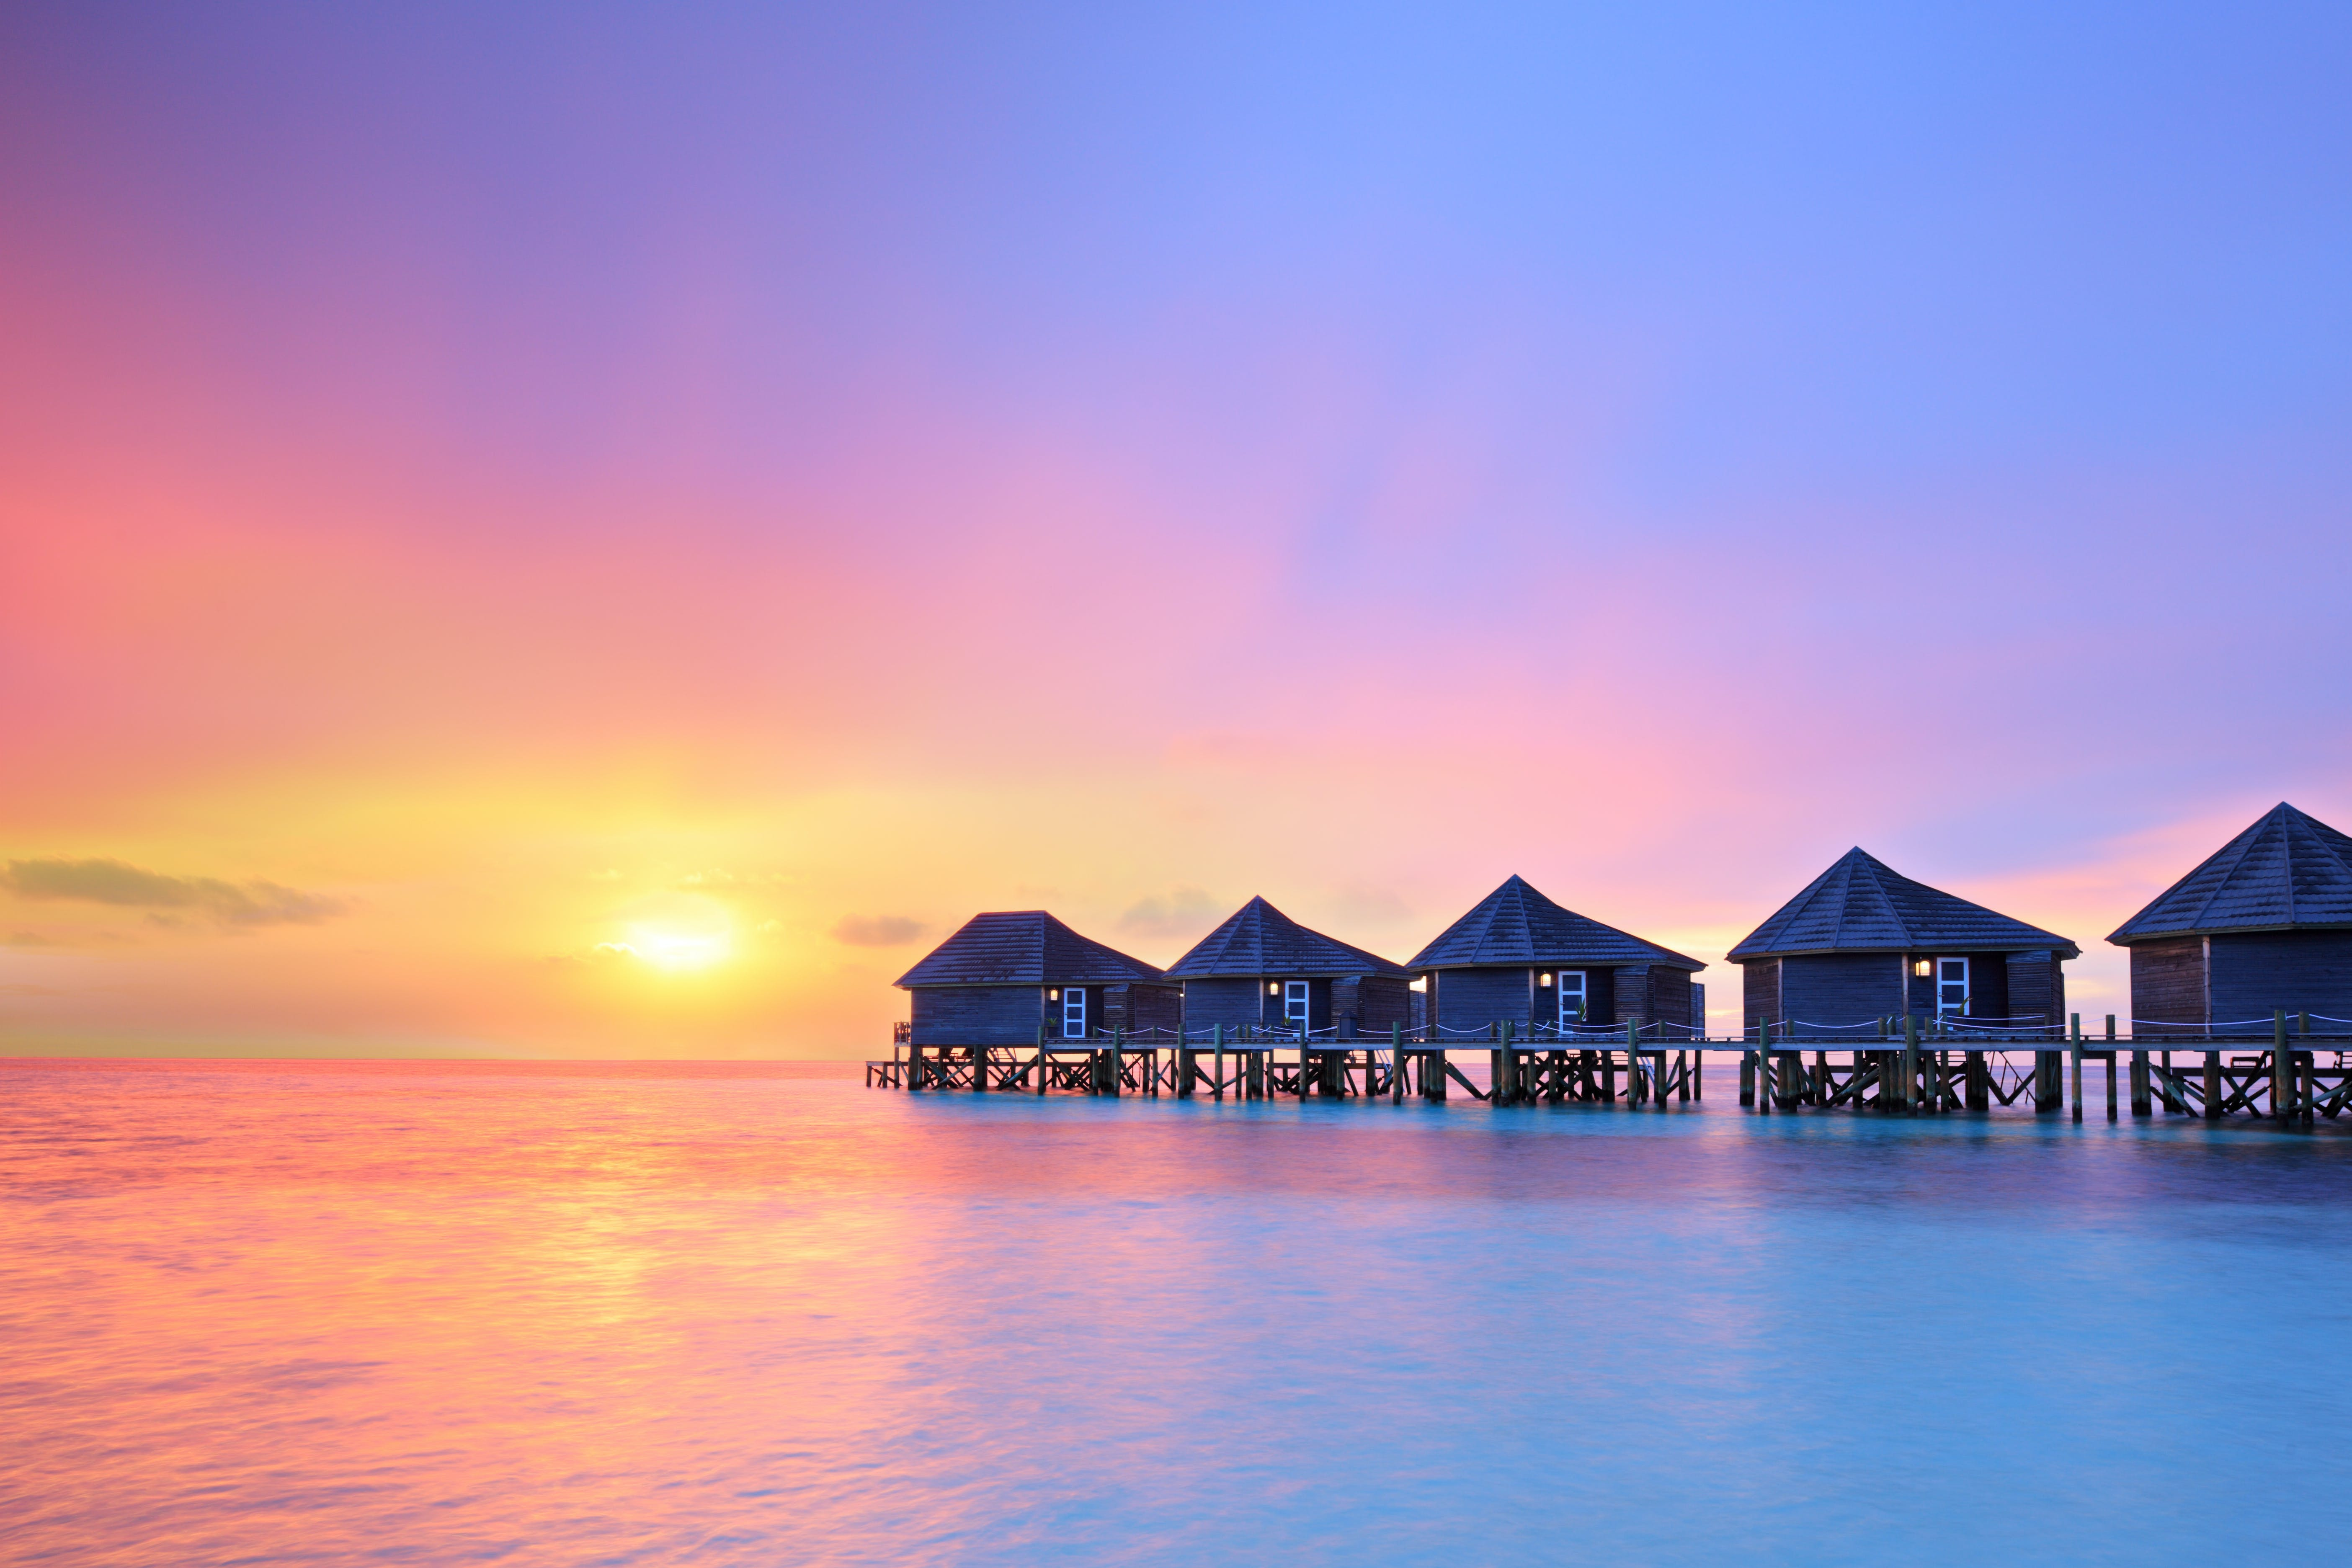 Sunset on Maldives island is a stunning site to behold.